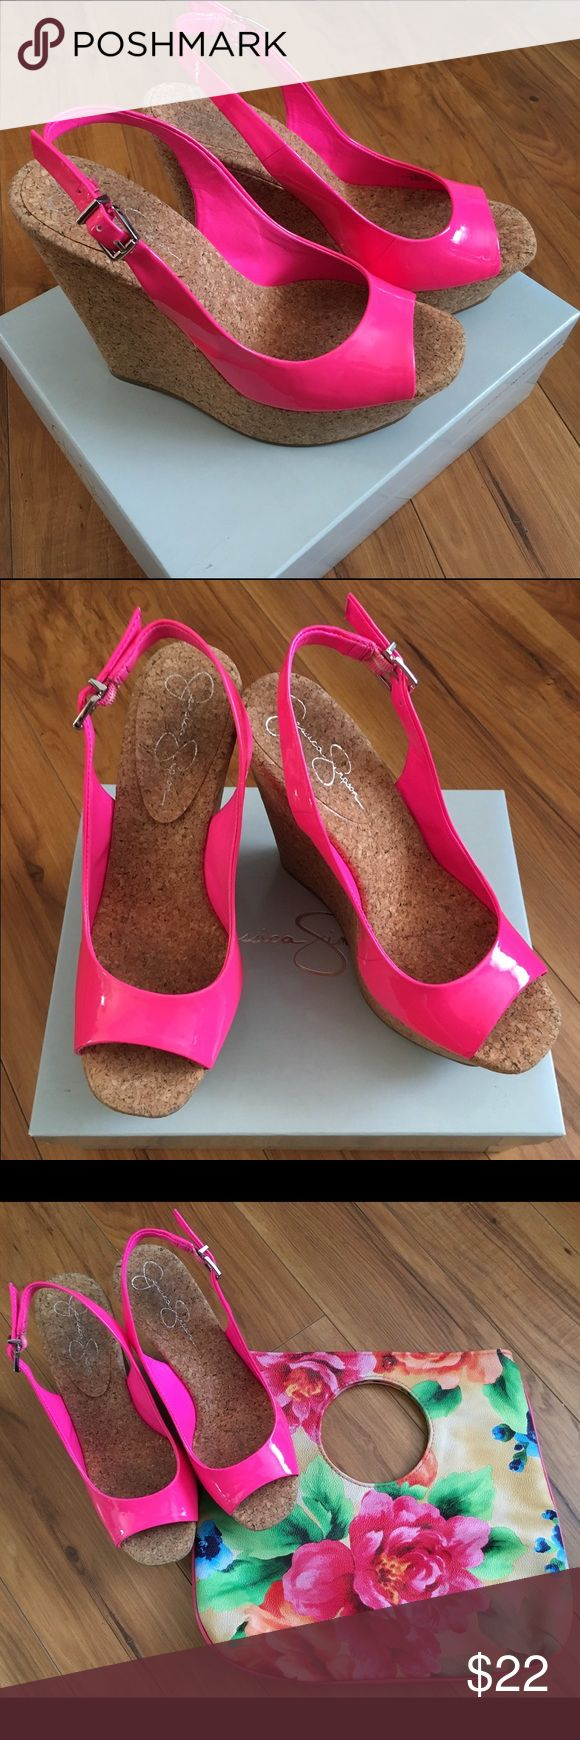 """Jessica Simpson Amande Hot Pink Wedges New in box Jessica Simpson Amande hot pink wedges. Cute for spring! Patent leather with a synthetic sole. Heel is about 4.75"""" Get ready for spring! Jessica Simpson Shoes Wedges"""